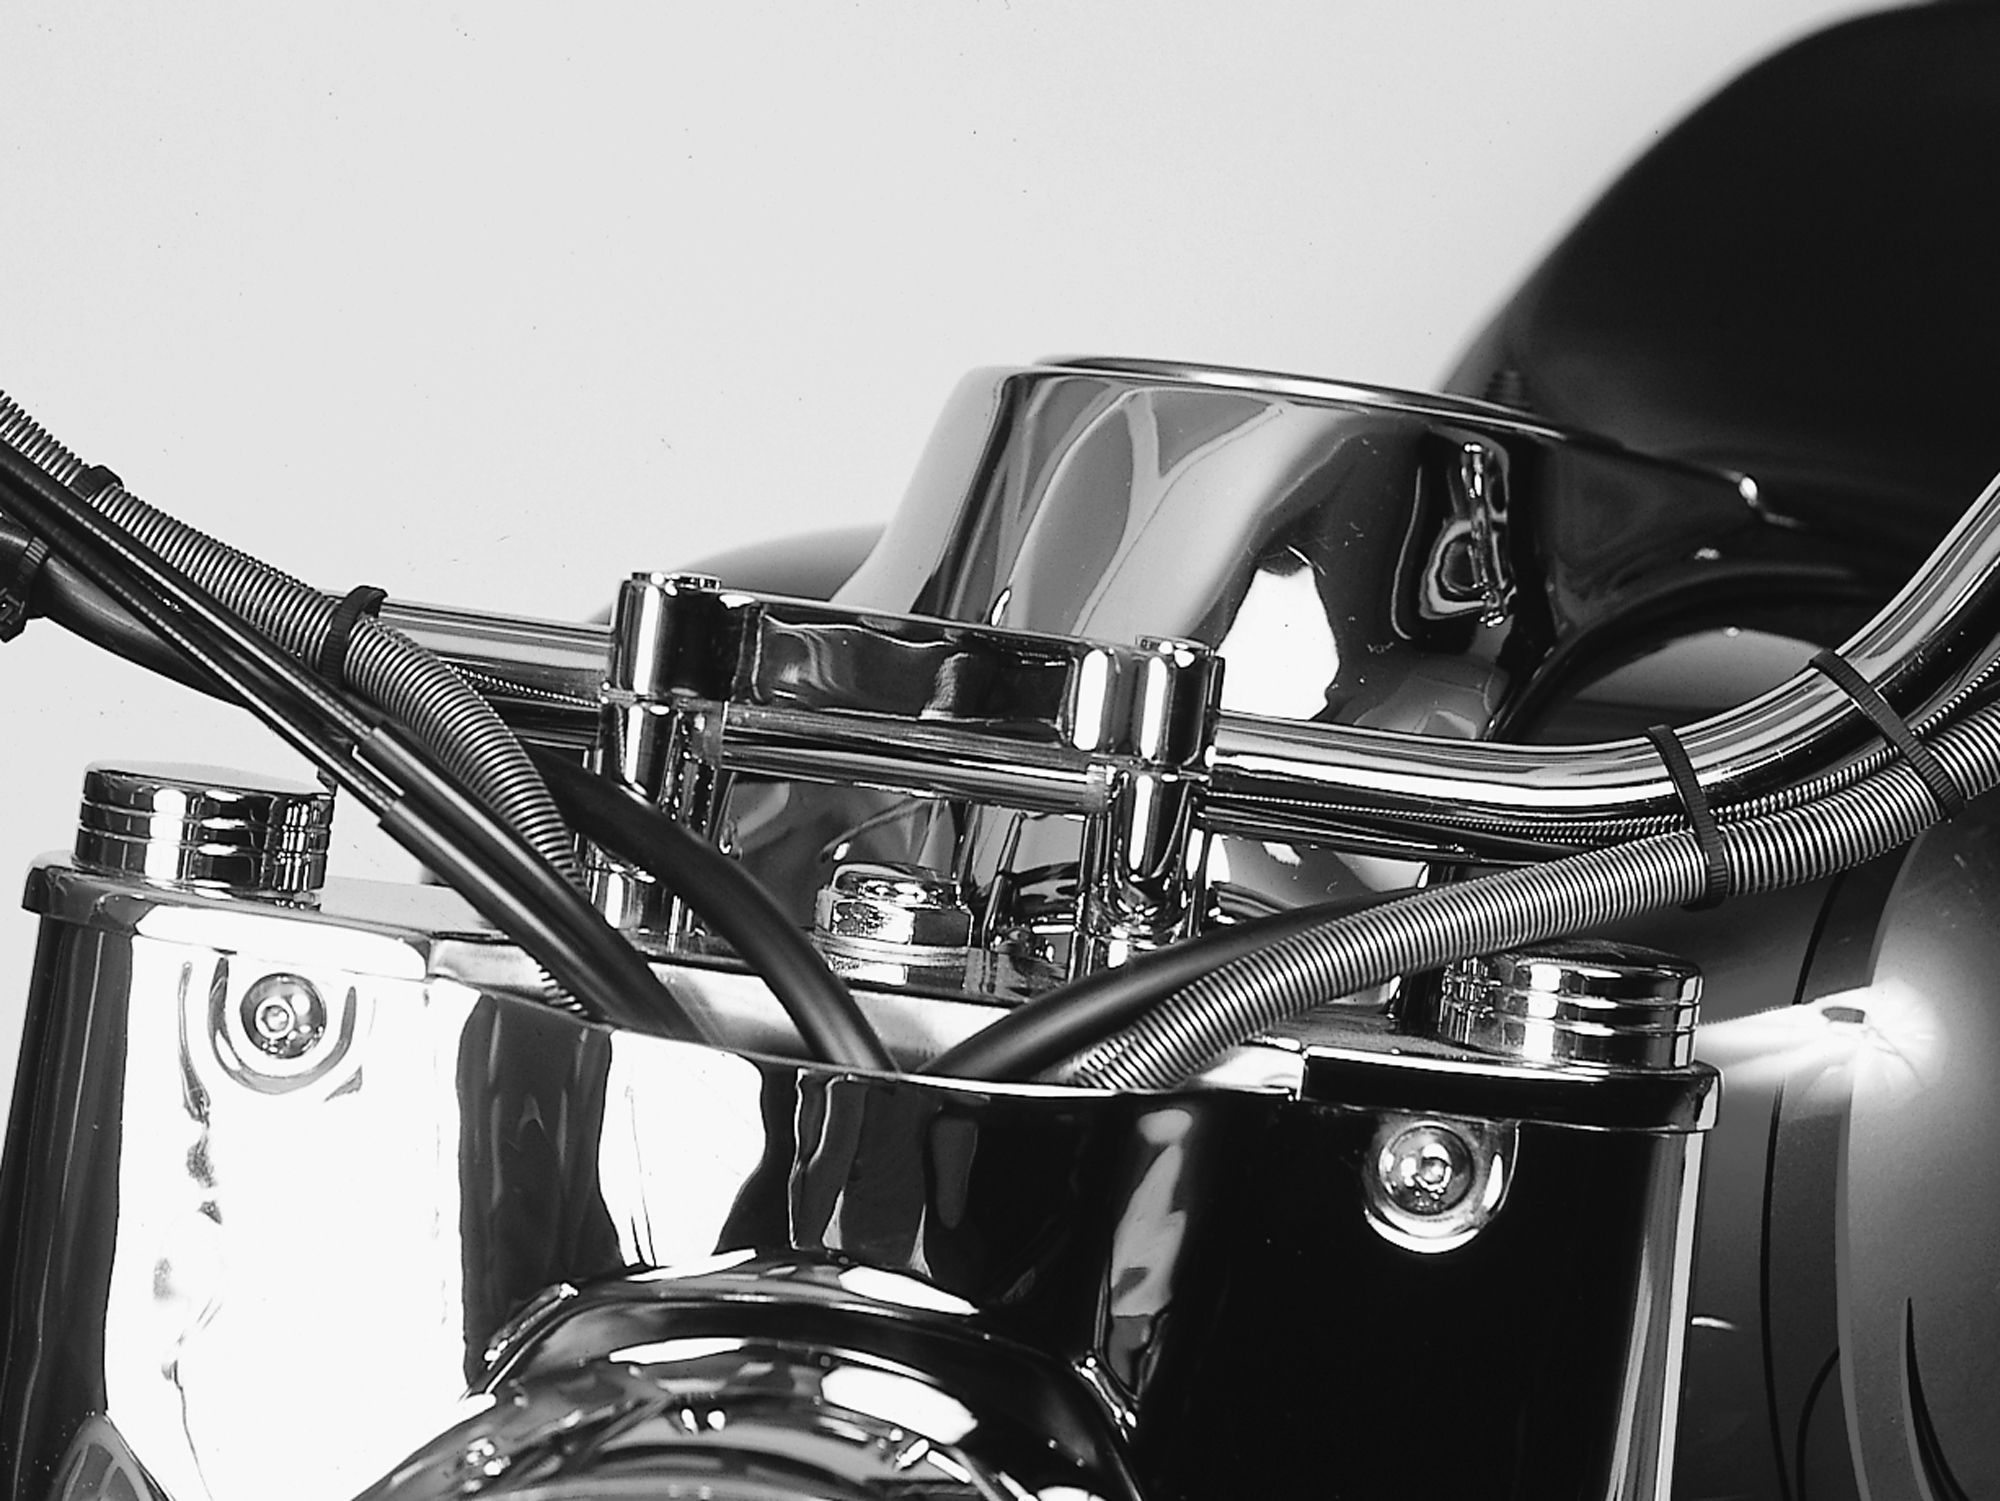 Tips on Swapping Out Handlebars on Your Motorcycle